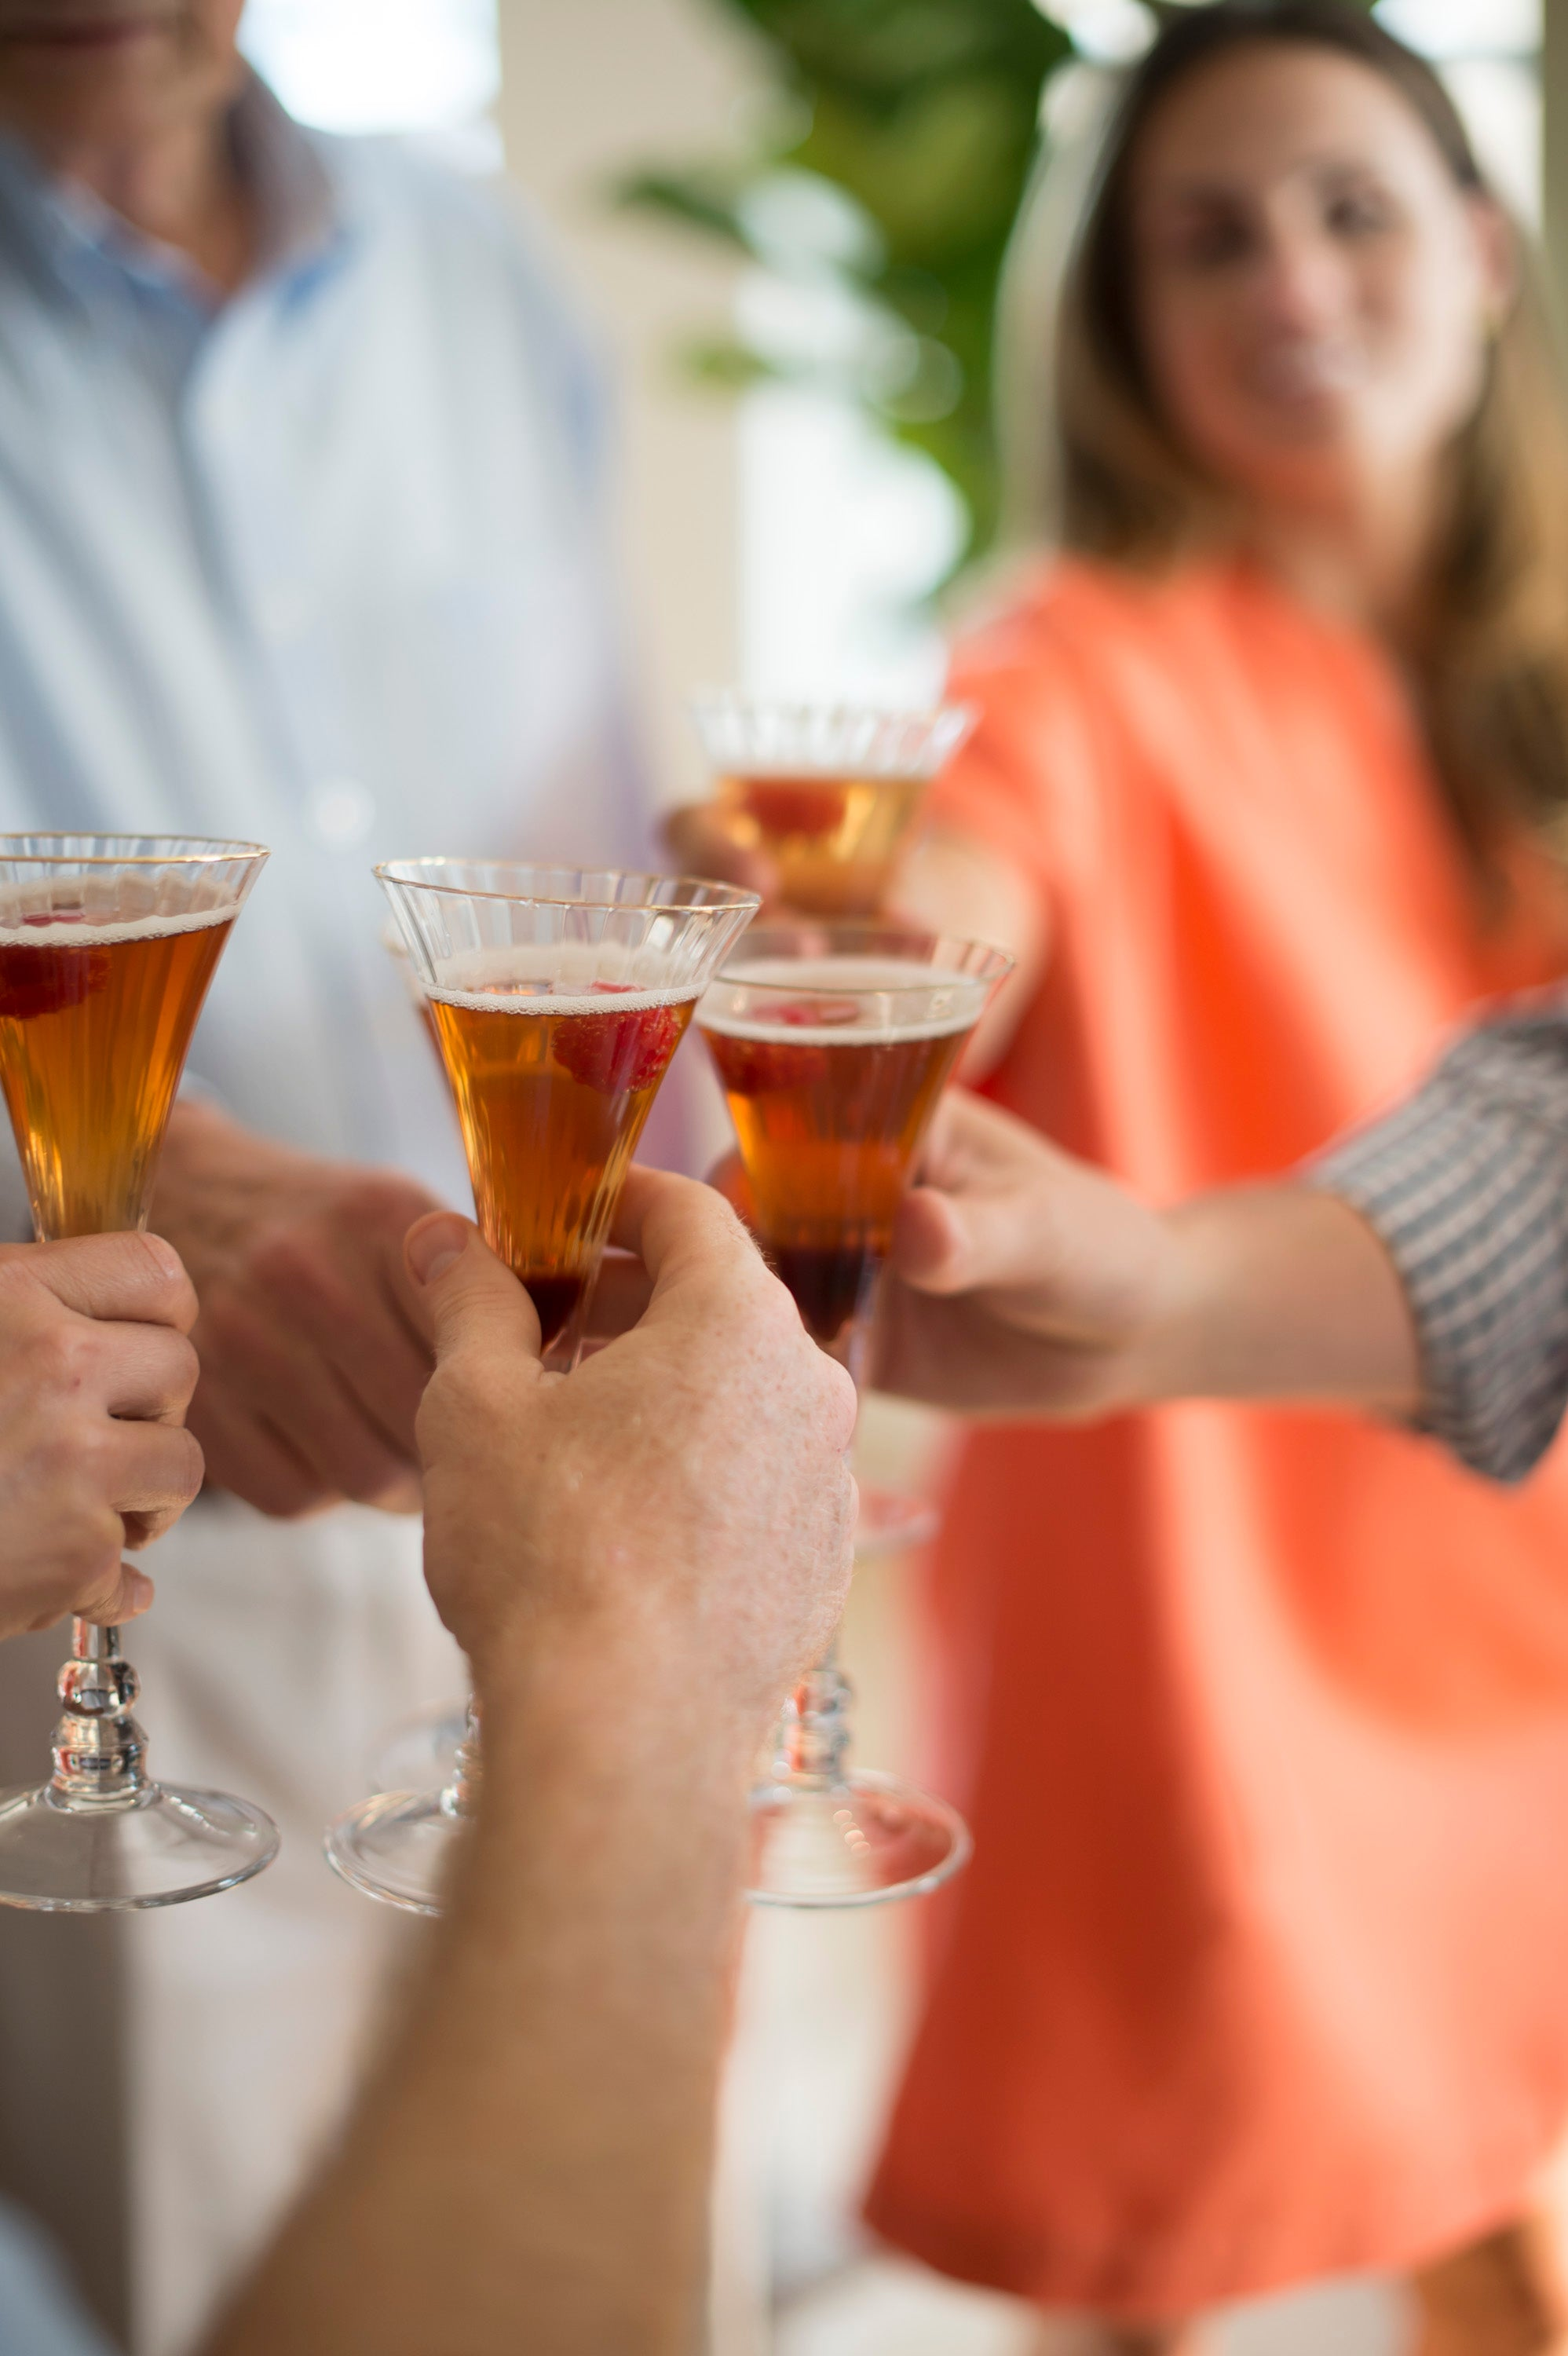 A group of people toasting